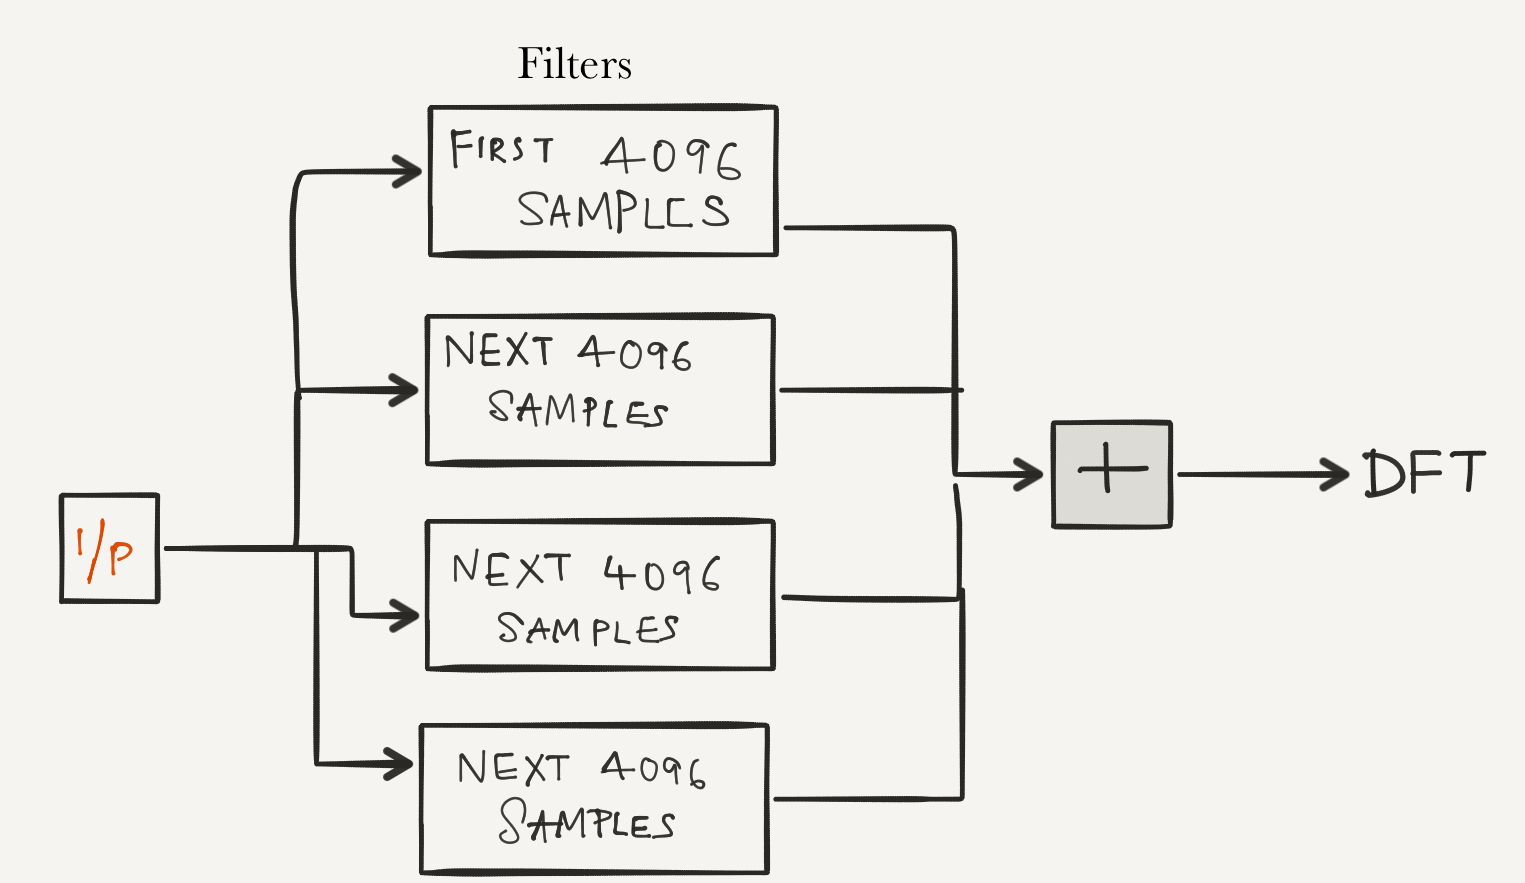 Digital Signal Processing In Radio Astronomy By Wvurail I Q Modulator Block Diagram The N Such Polyphase Sub Filters That Make Up This Operation Together With Following Dft Stage Are Collectively Called A Filter Bank